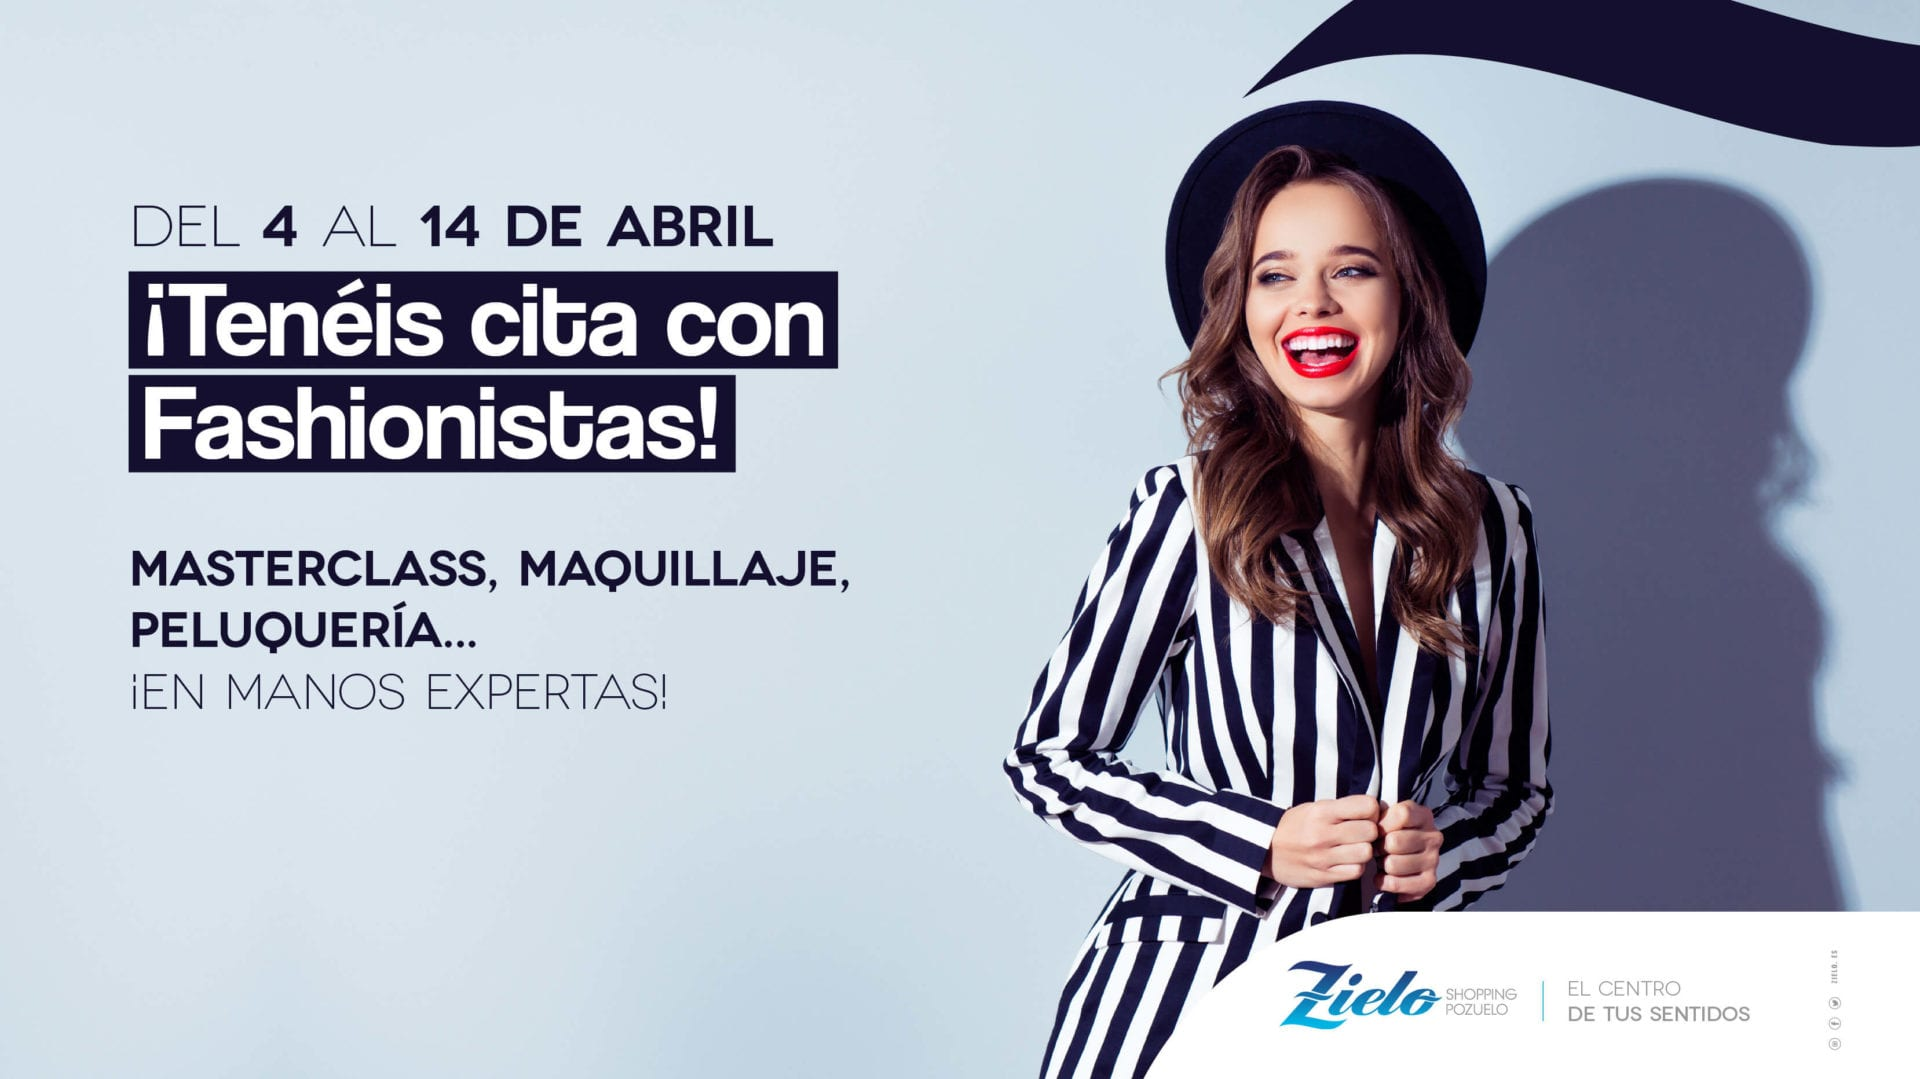 Del 4 al 14 de Abril... ¡Fashionistas en Zielo Shopping!